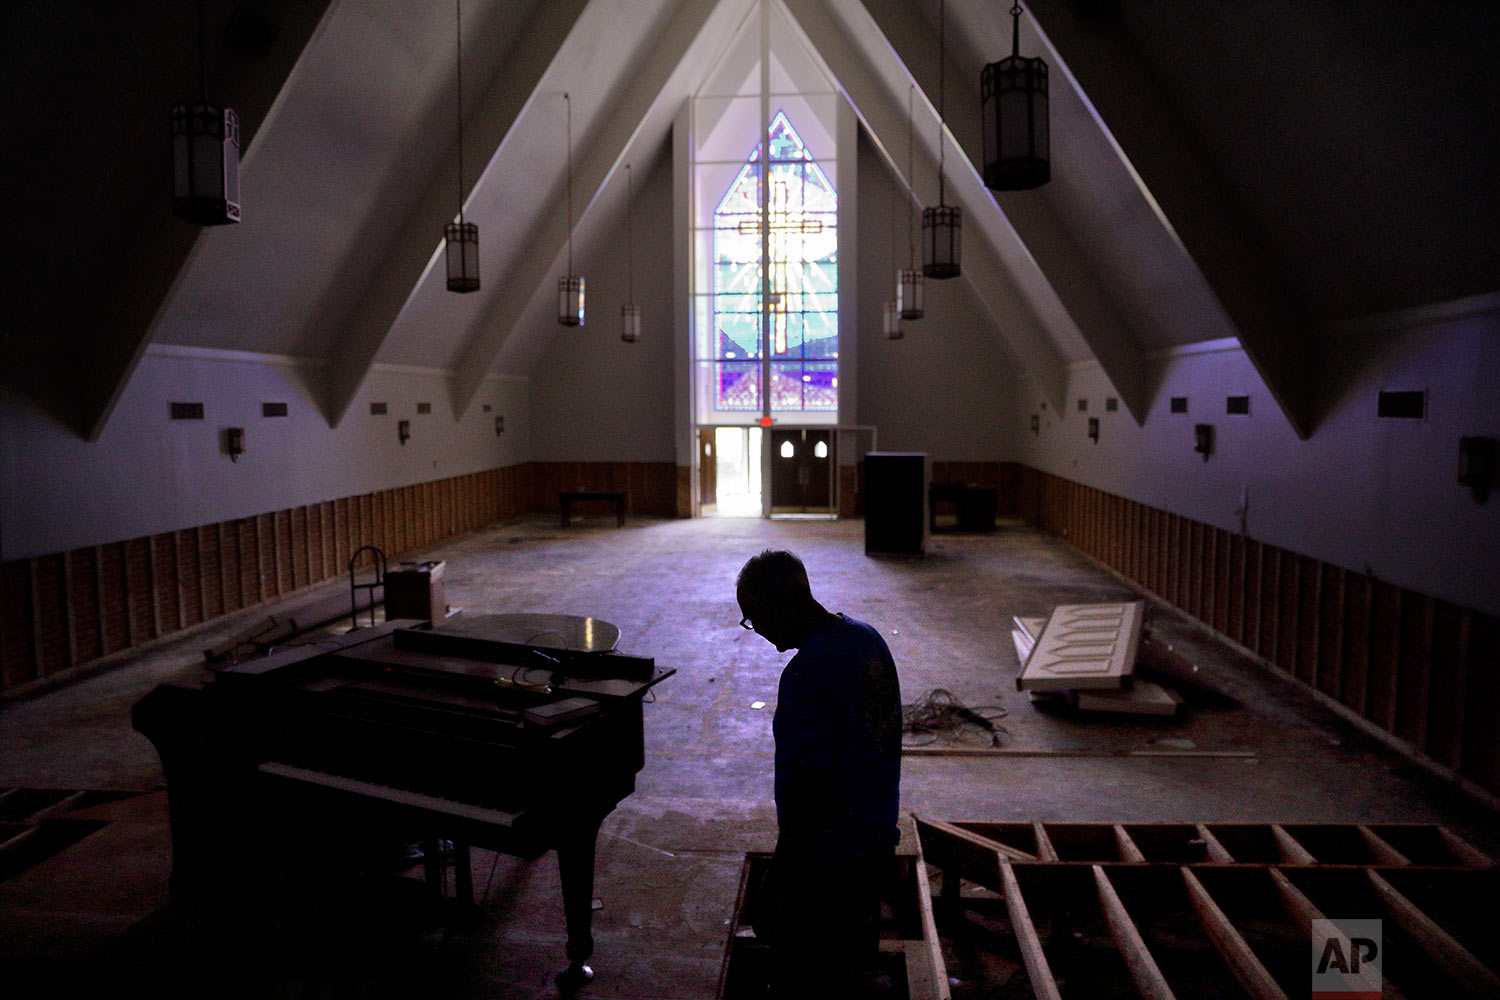 Wayne Christopher walks through the Hurricane Harvey-damaged sanctuary of the Memorial Baptist Church in Port Arthur, Texas, Monday, Sept. 25, 2017. He had attended the church for his whole life. In the weeks since Hurricane Harvey devastated Jefferson County, Texas, and as other monstrous storms pummeled Florida and Puerto Rico, some here found themselves in quiet moments pondering what has become some of the most polarizing questions in American political discourse: have human beings altered the earth so profoundly it is making bad storms more brutal? And what should we do about it now? (AP Photo/David Goldman)